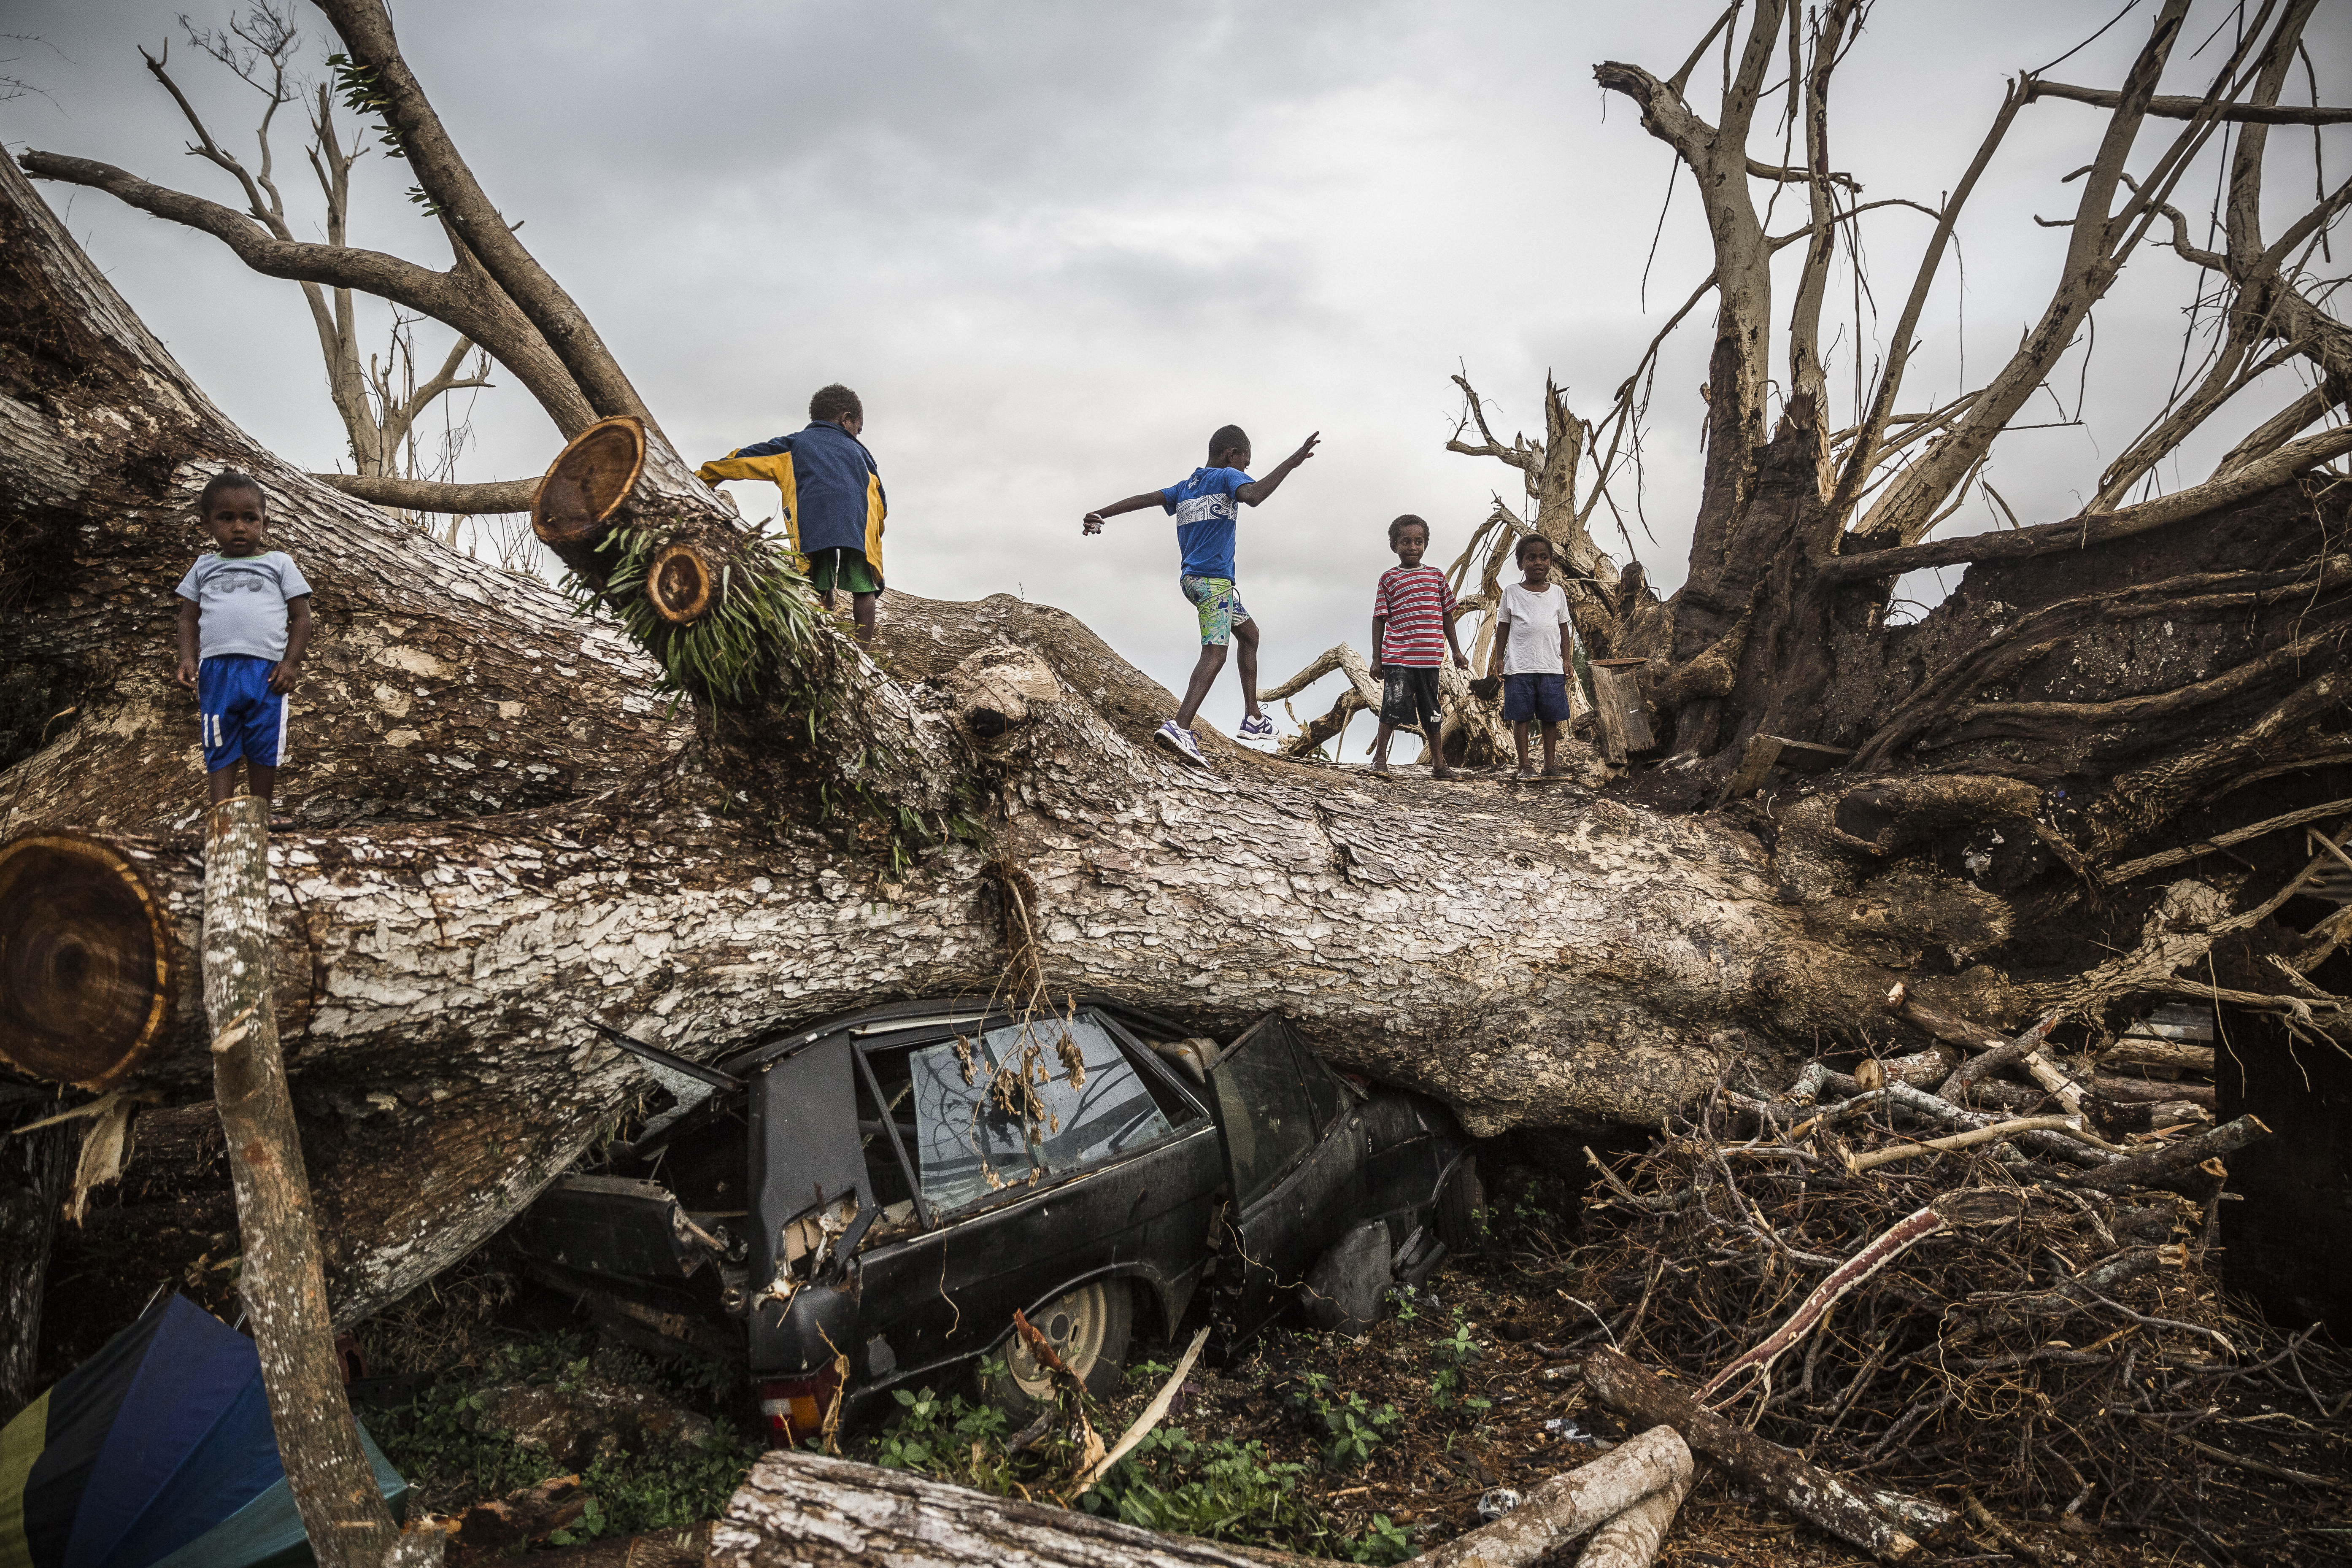 On 29 March 2015, children play on a fallen tree that came down during Cyclone Pam on 13 Marchs 2015 and has crushed a car on the outskirts of Port Vila in Vanuatu.